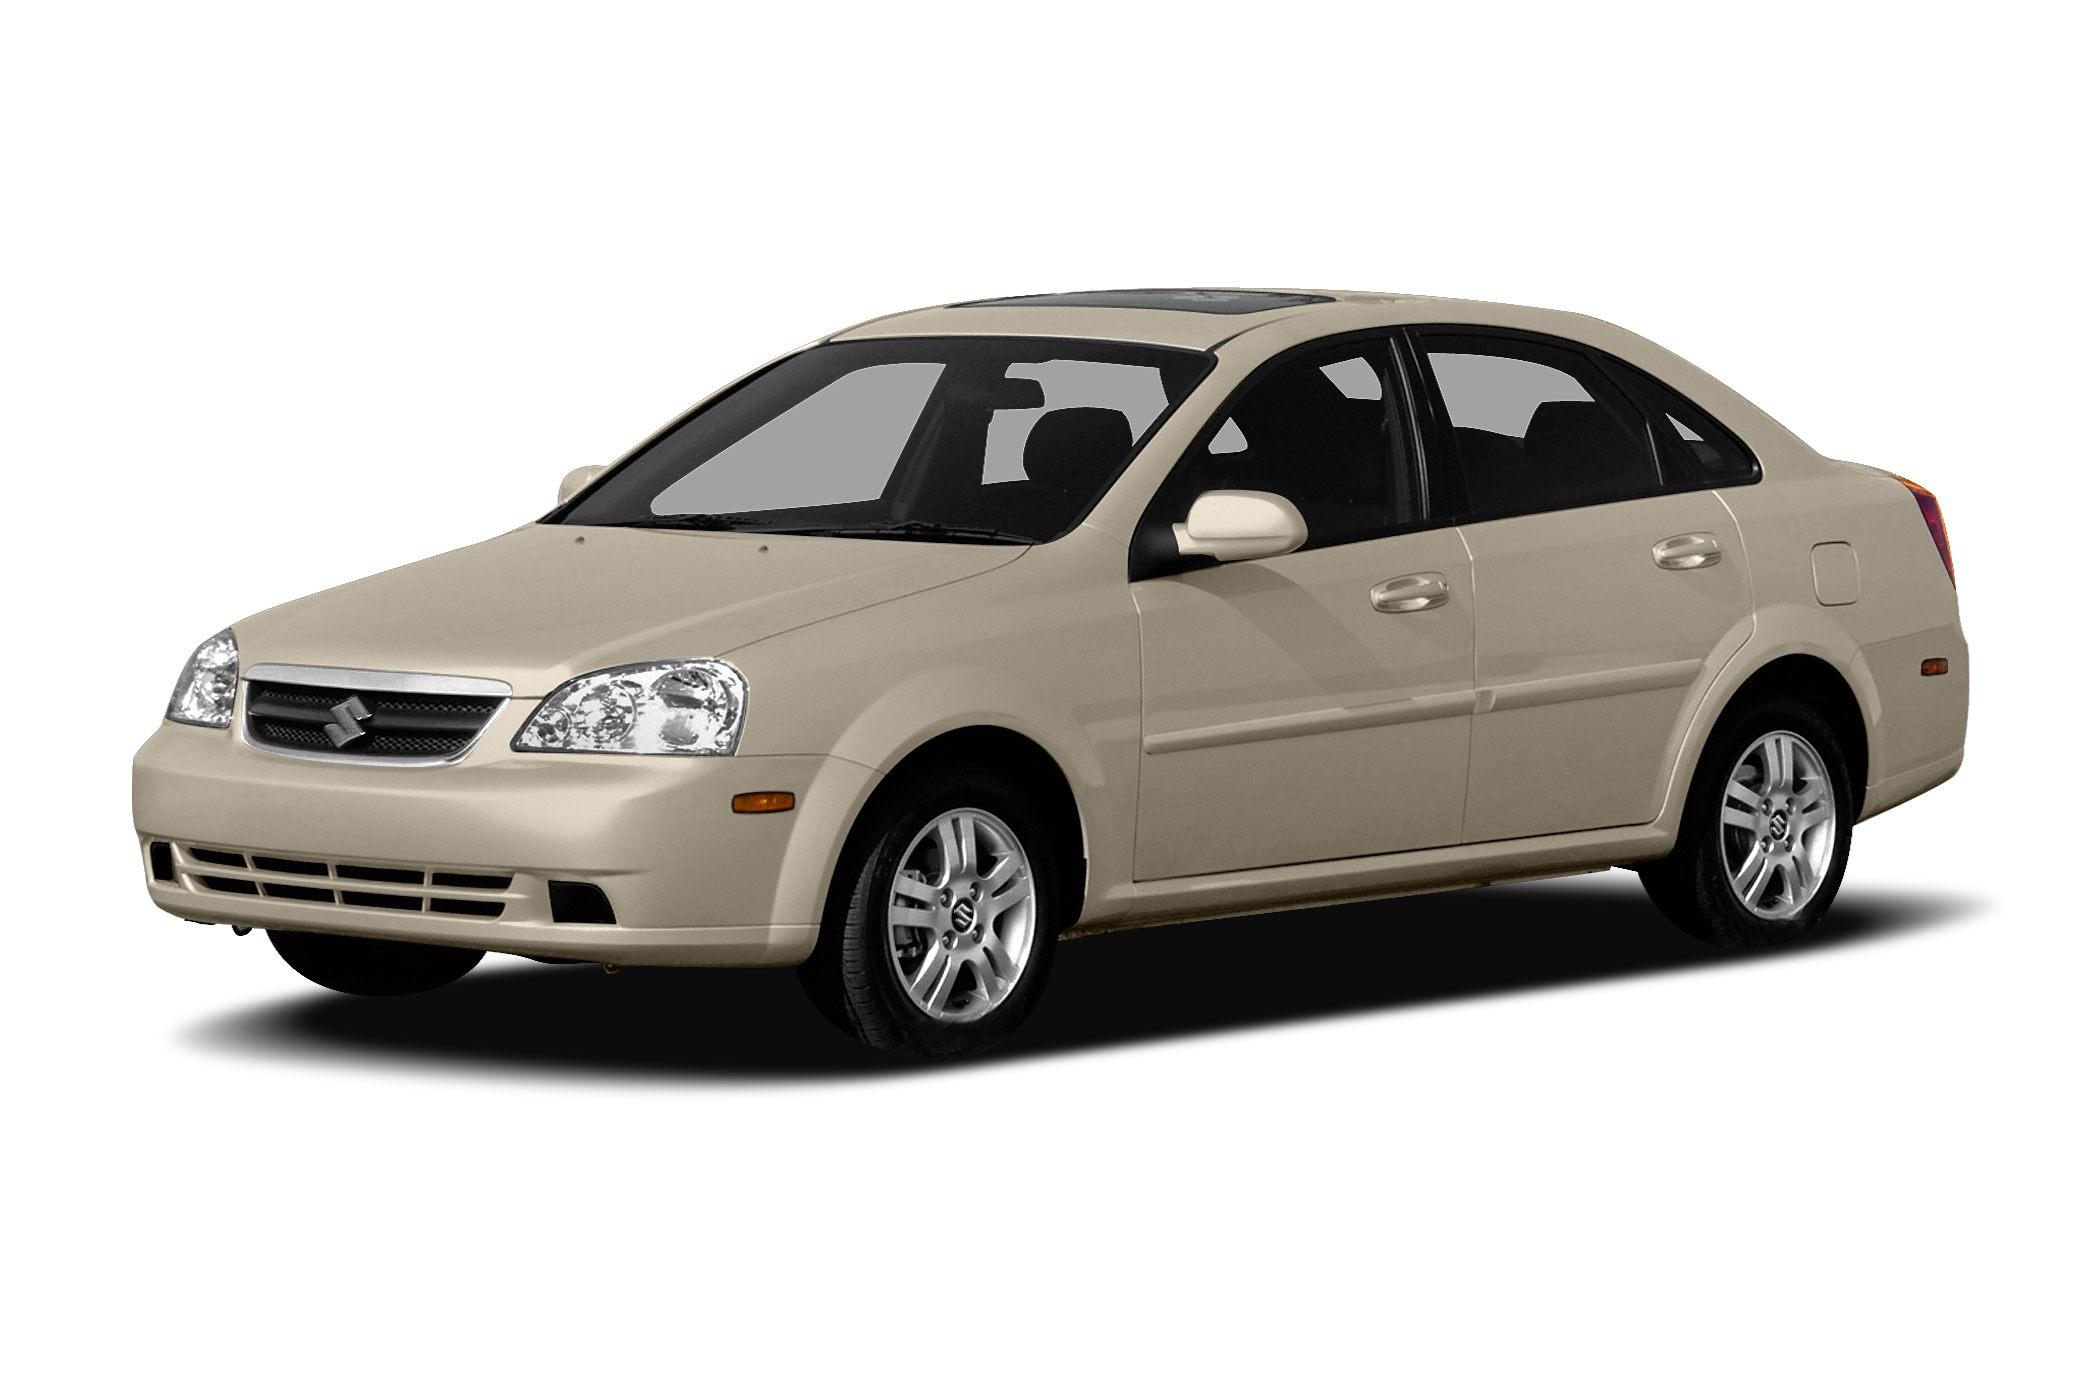 2007 Suzuki Forenza Base THIS VEHICLE COMES WITH OUR BEST PRICE GUARANTEE FIND A BETTER ON A SIM